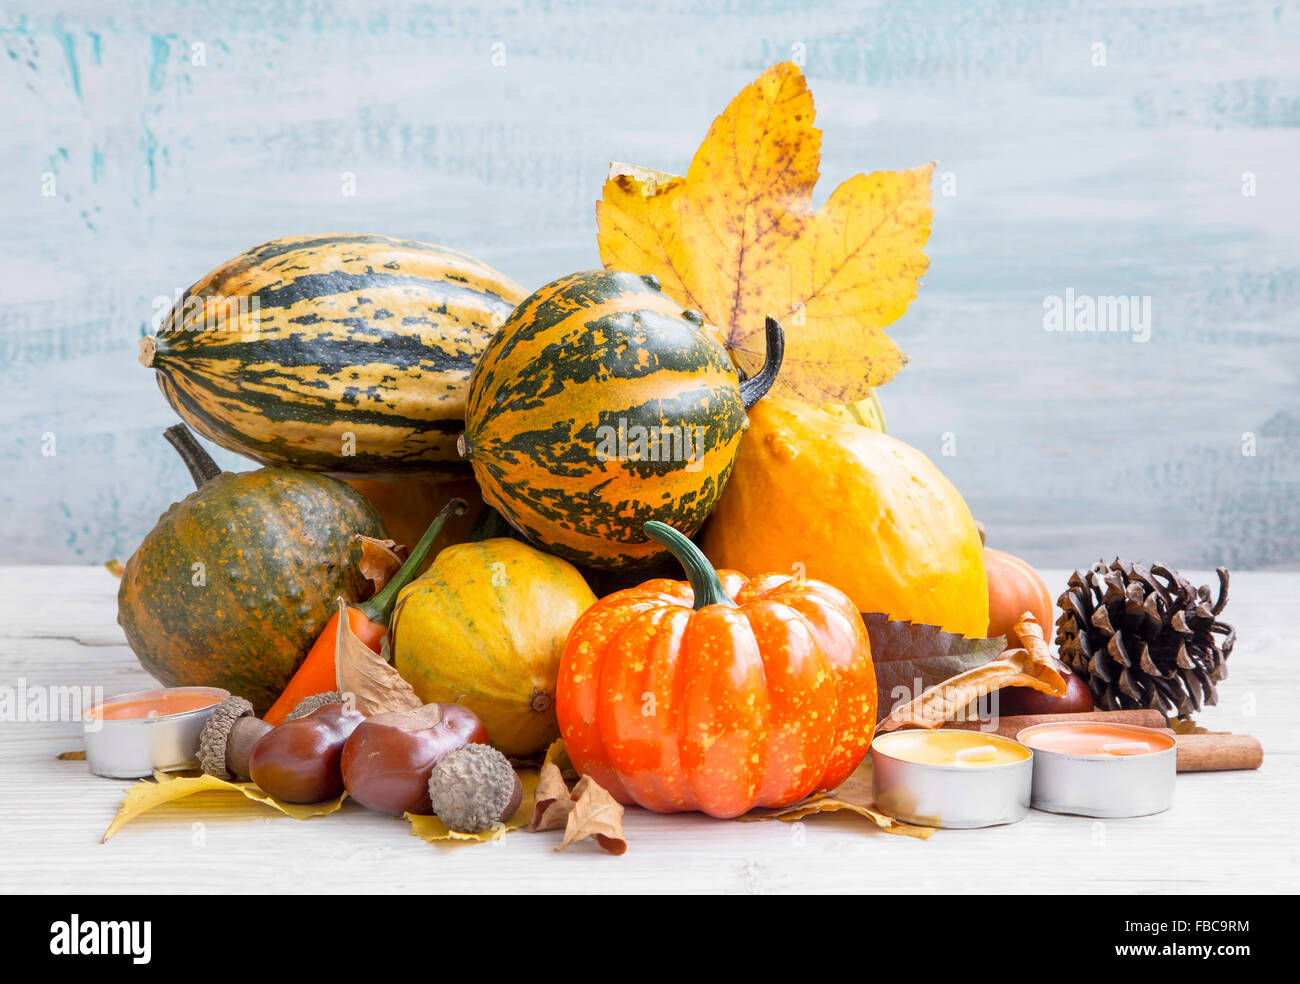 Variety of Autumn Pumpkins Assortment on Painted Wood Stock Photo